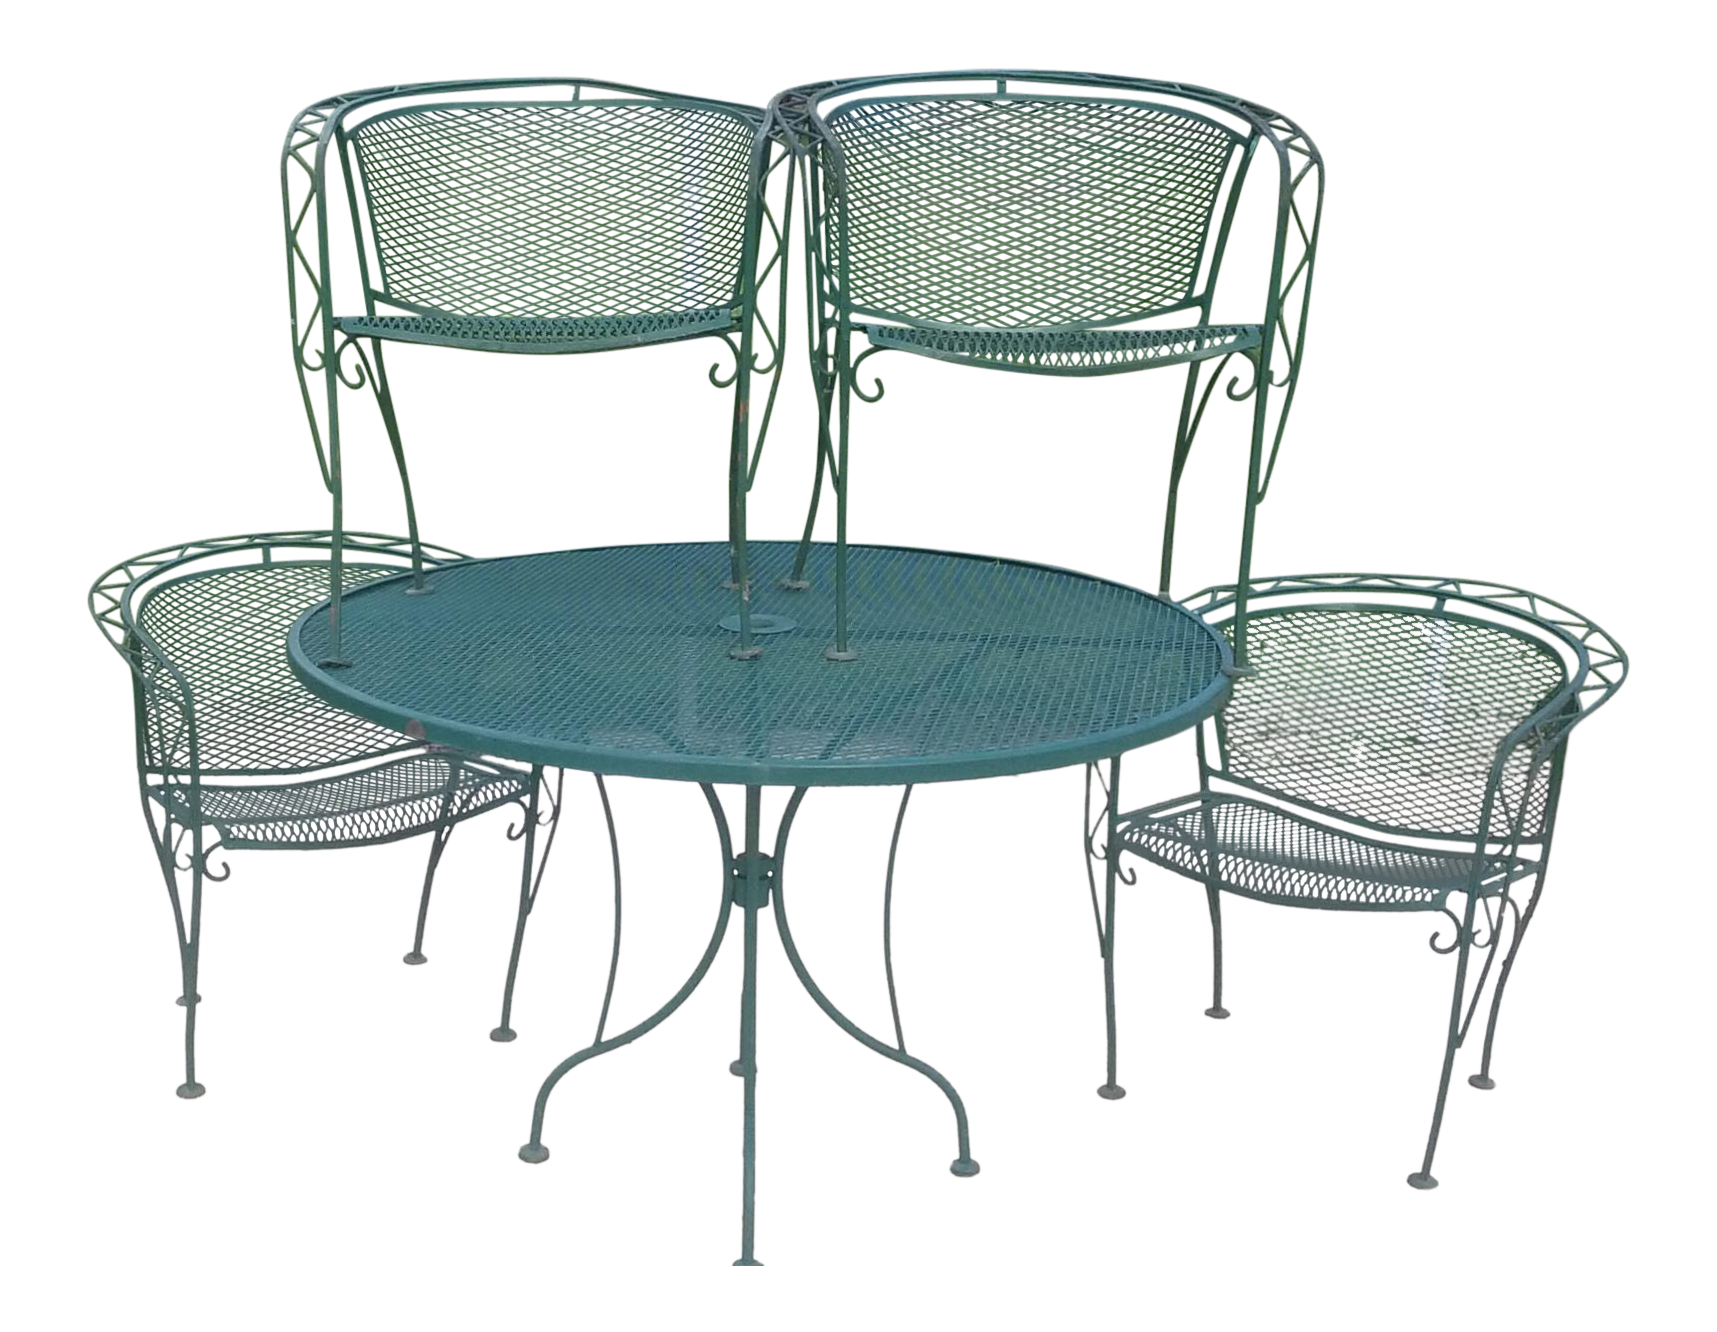 Green wrought iron patio furniture Coloured Metal Mid Century Modern Woodward Wrought Iron Outdoor Patio Dining Table Chairs Set Of Chairish Vintage Used Wrought Iron Patio And Garden Furniture Chairish